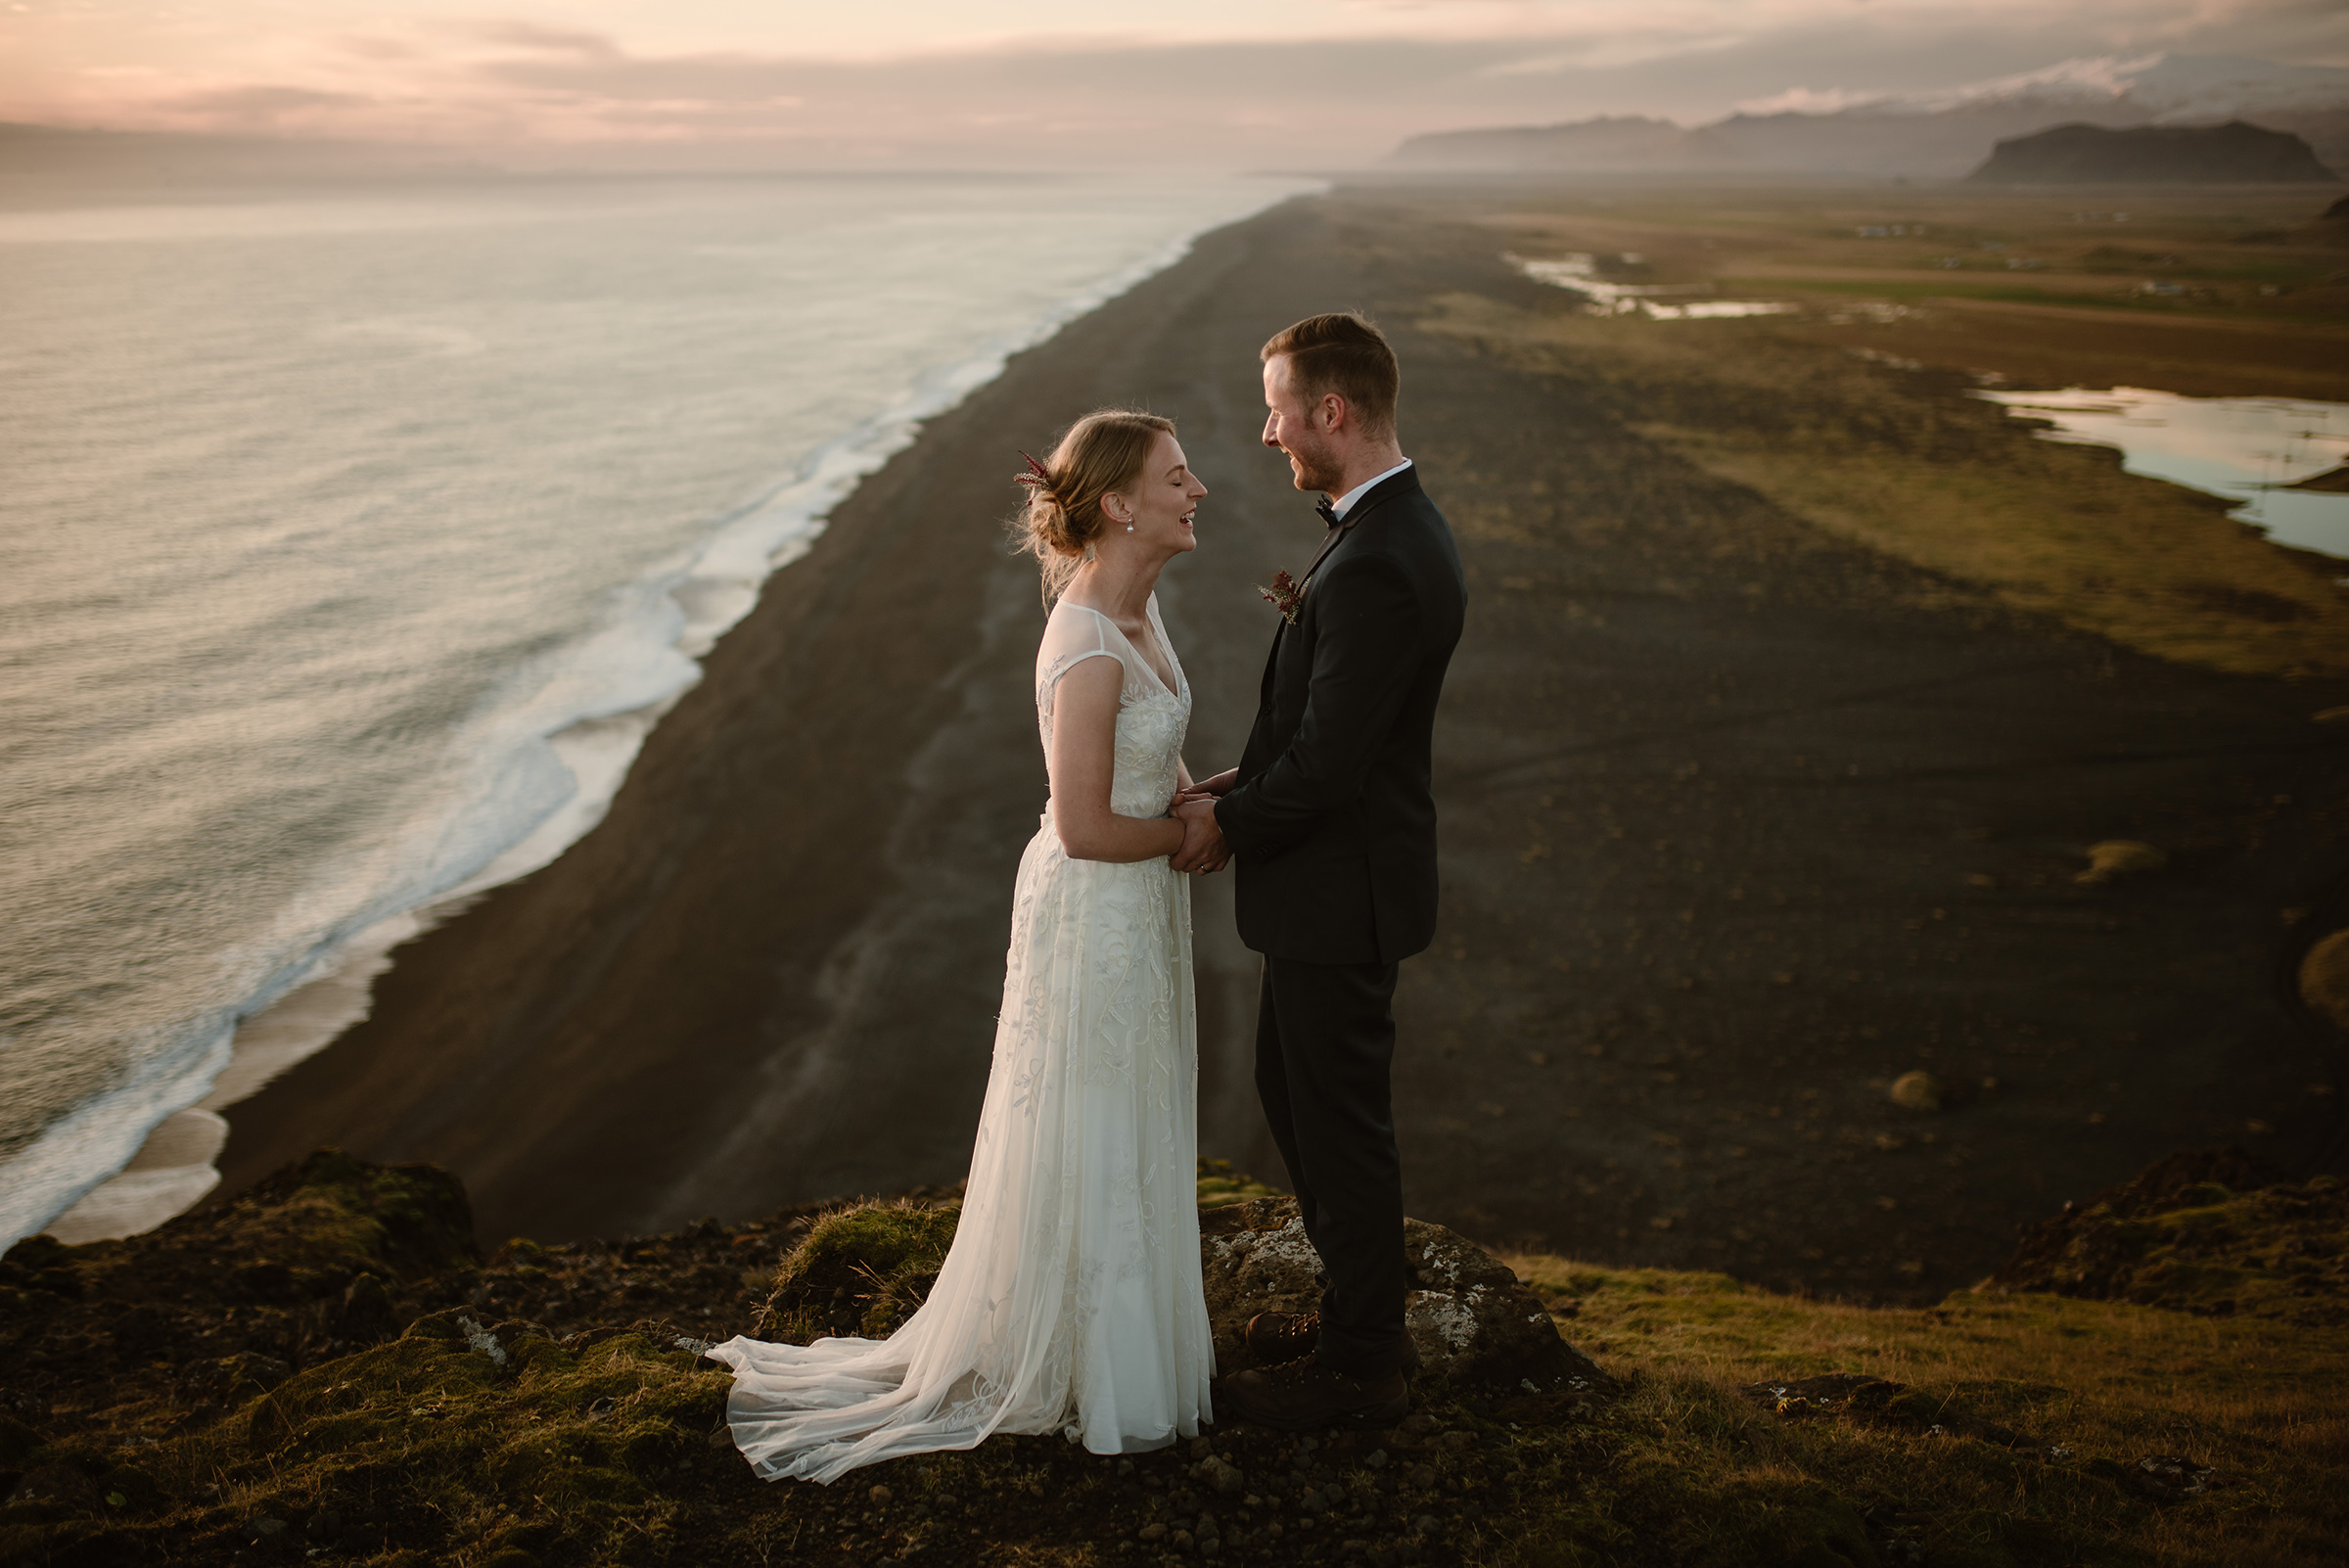 Face to face couple portrait on cliff above coastline - photo by Virginia & Evan